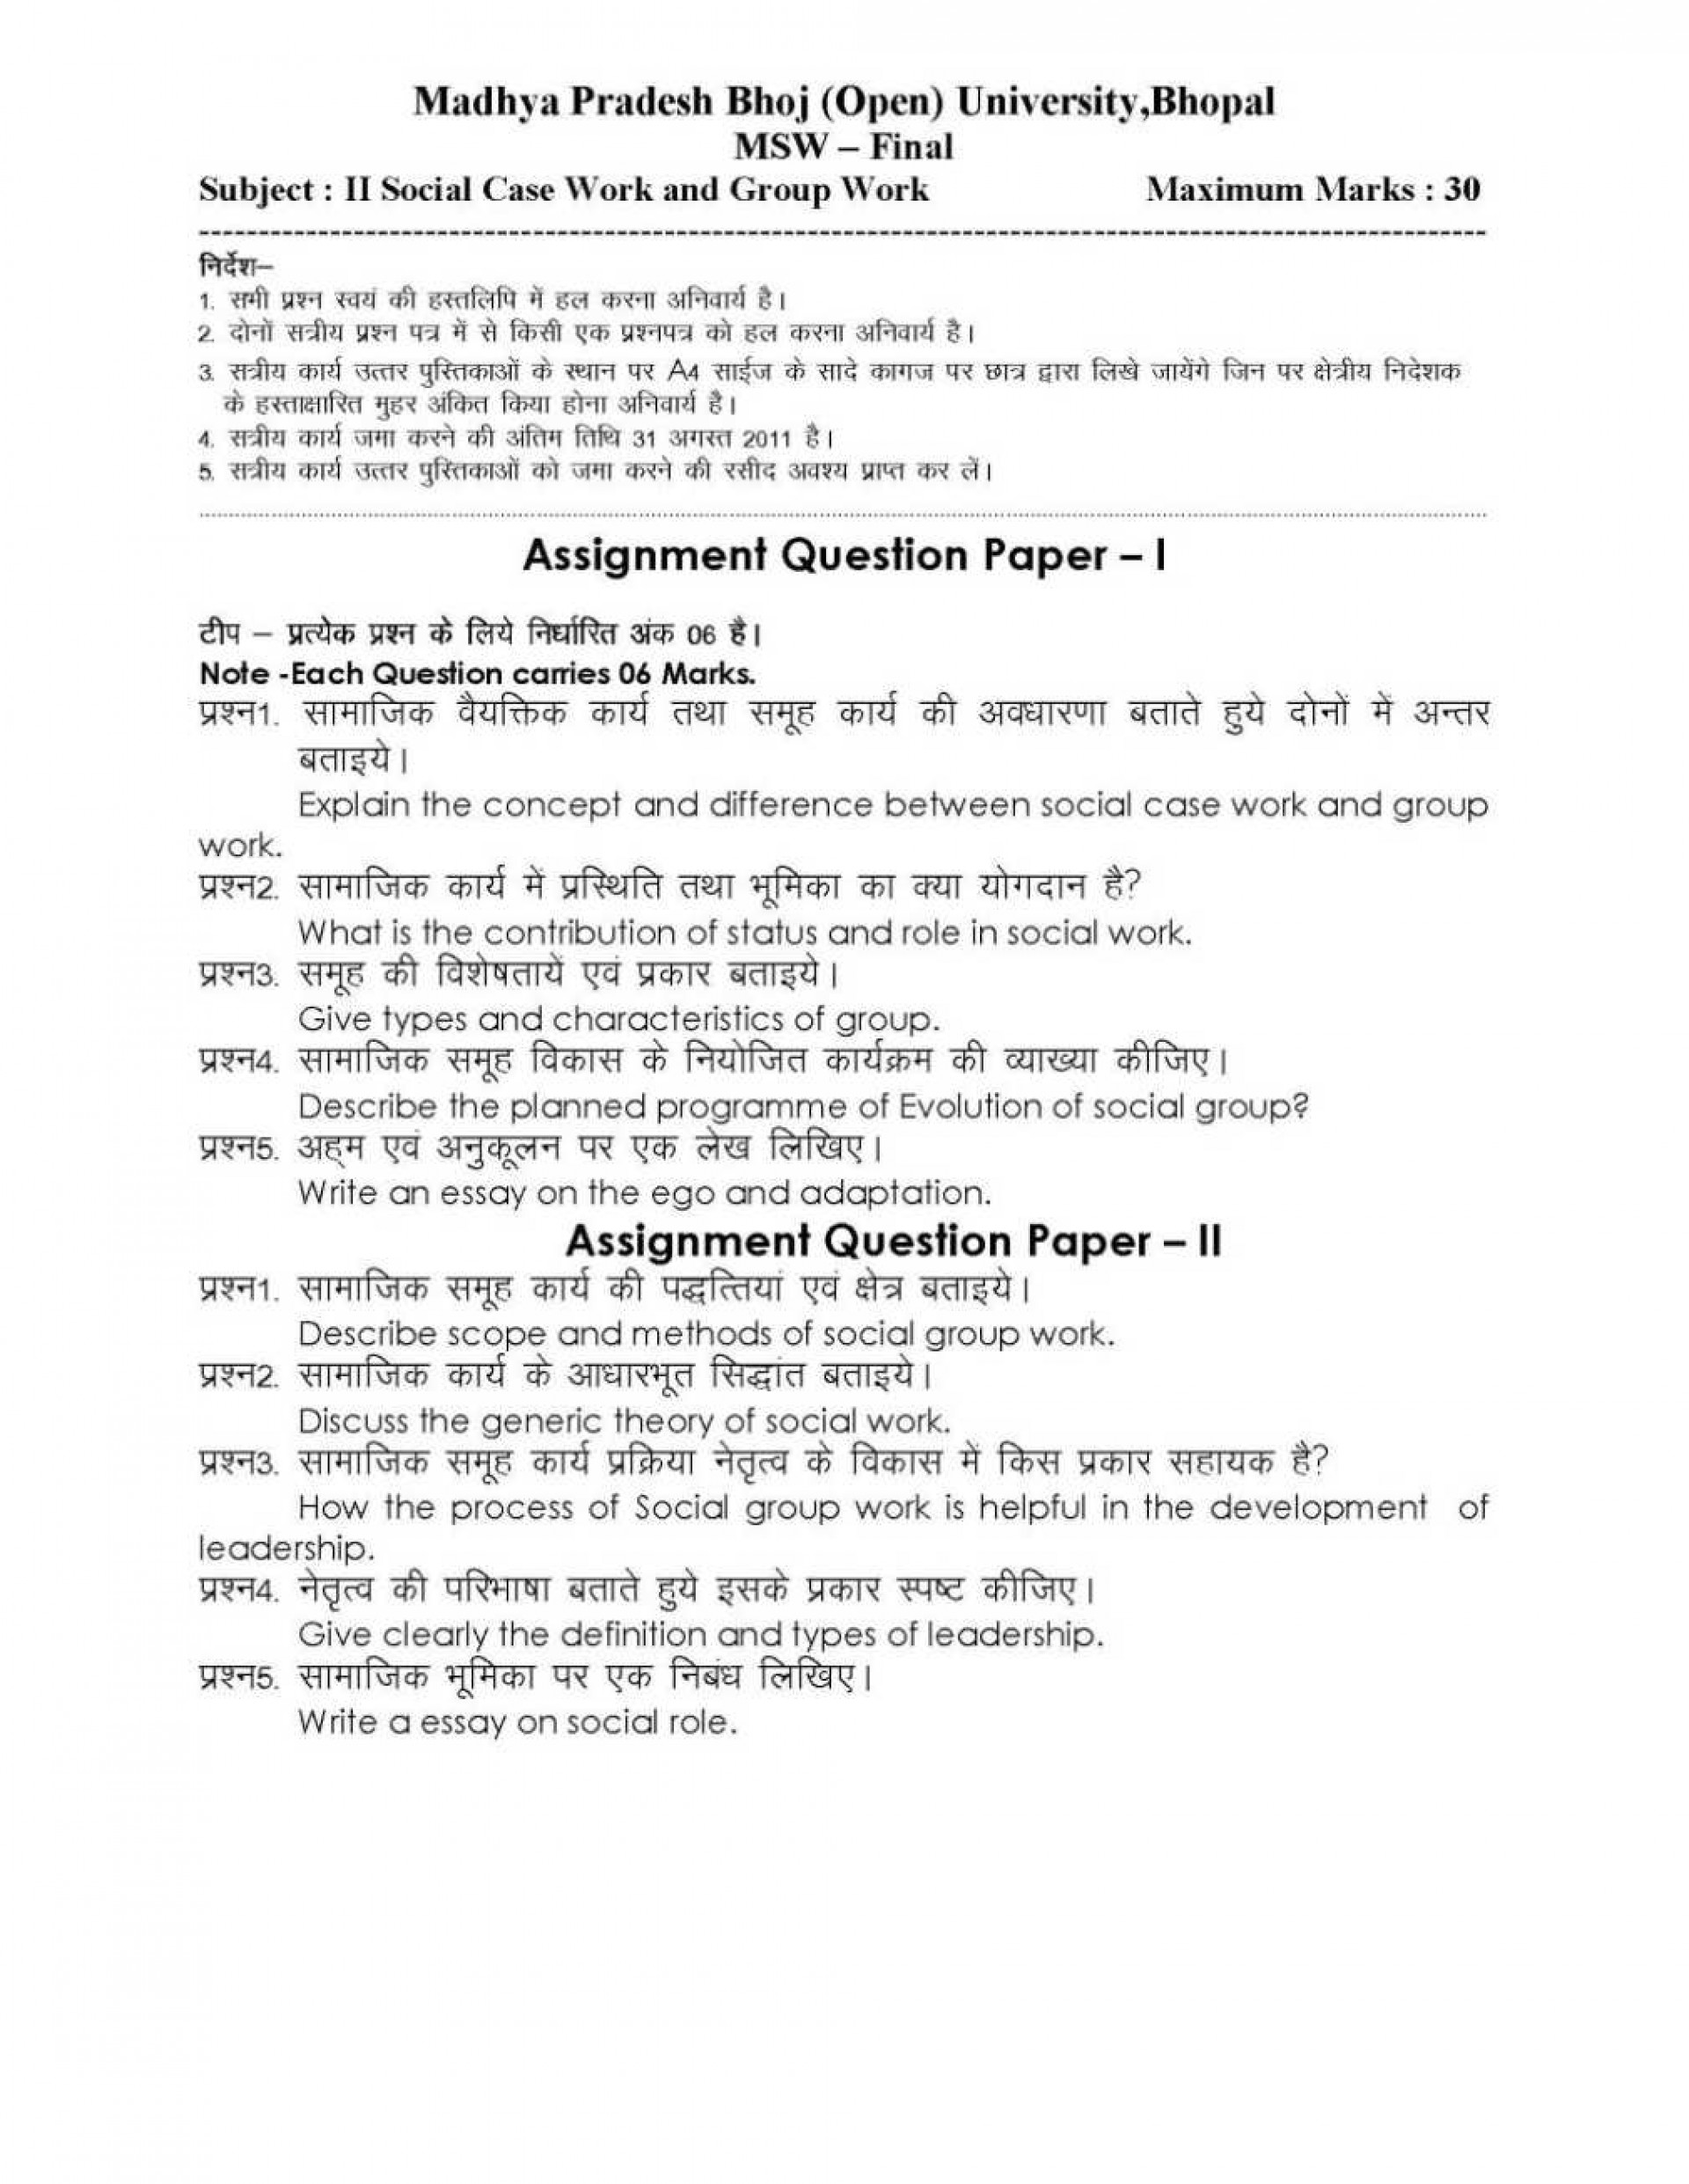 009 Leadership Essays Essay Example Bhoj University Bhopal Msw Striking Chevening Samples Uc Examples 1920